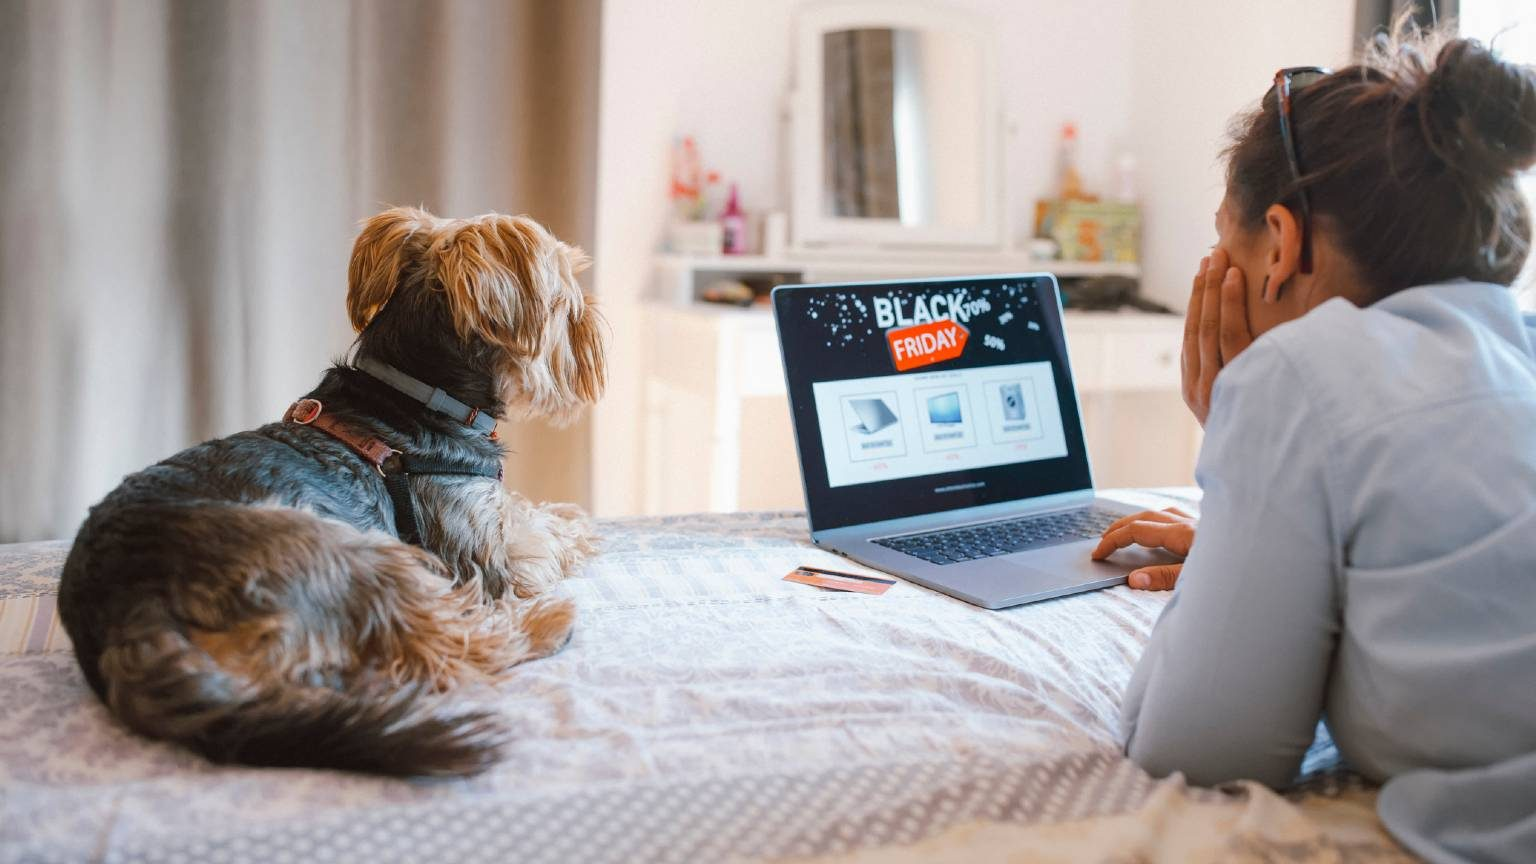 Woman is buying electronics online at Black Friday while relaxing at the bed with her dog